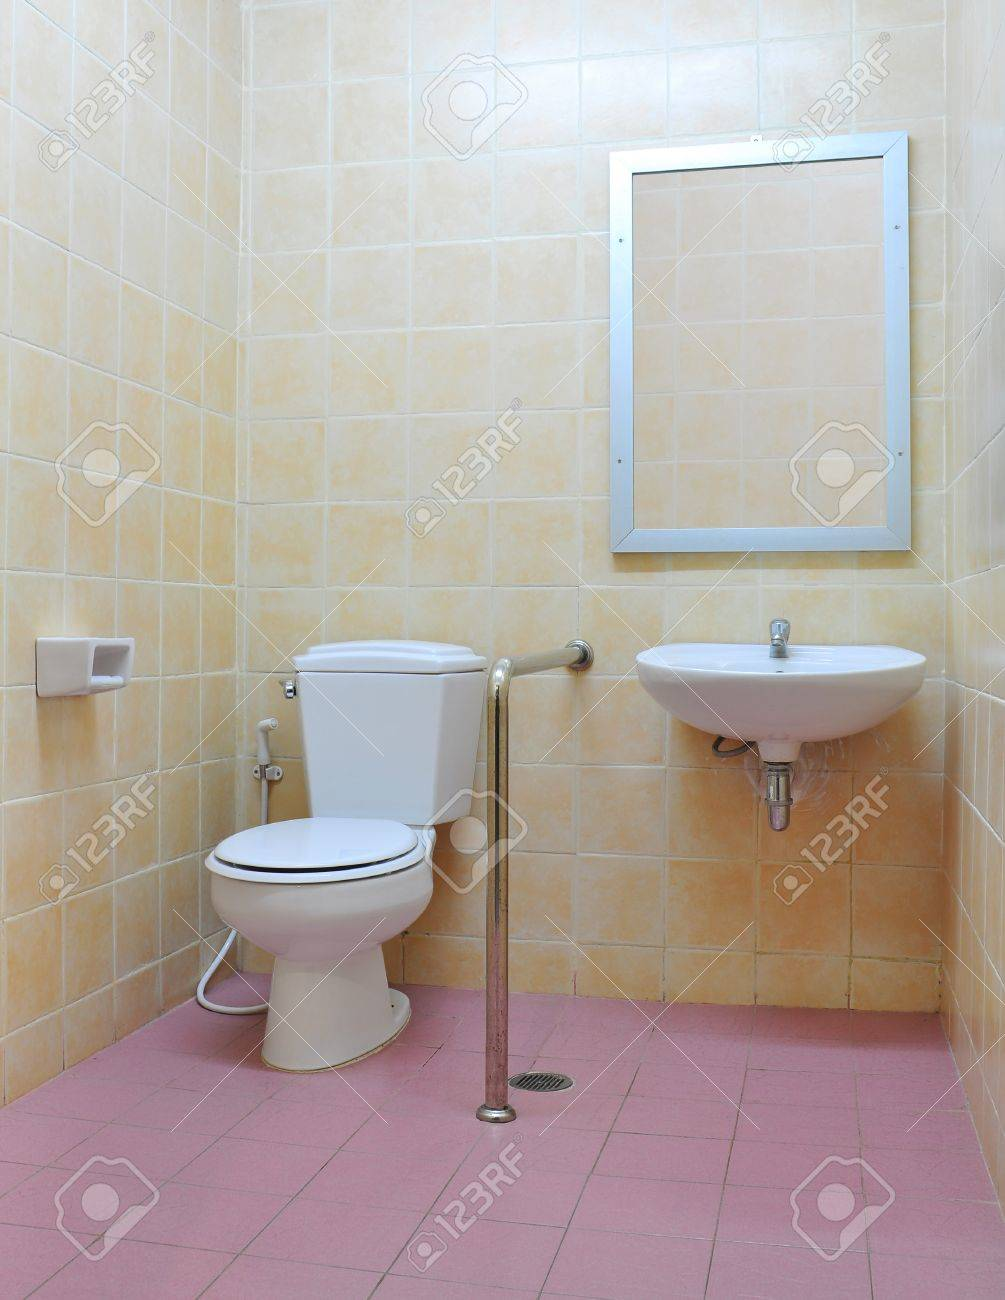 Disabled toilet Stock Photo   8957238. Disabled Toilet Stock Photo  Picture And Royalty Free Image  Image